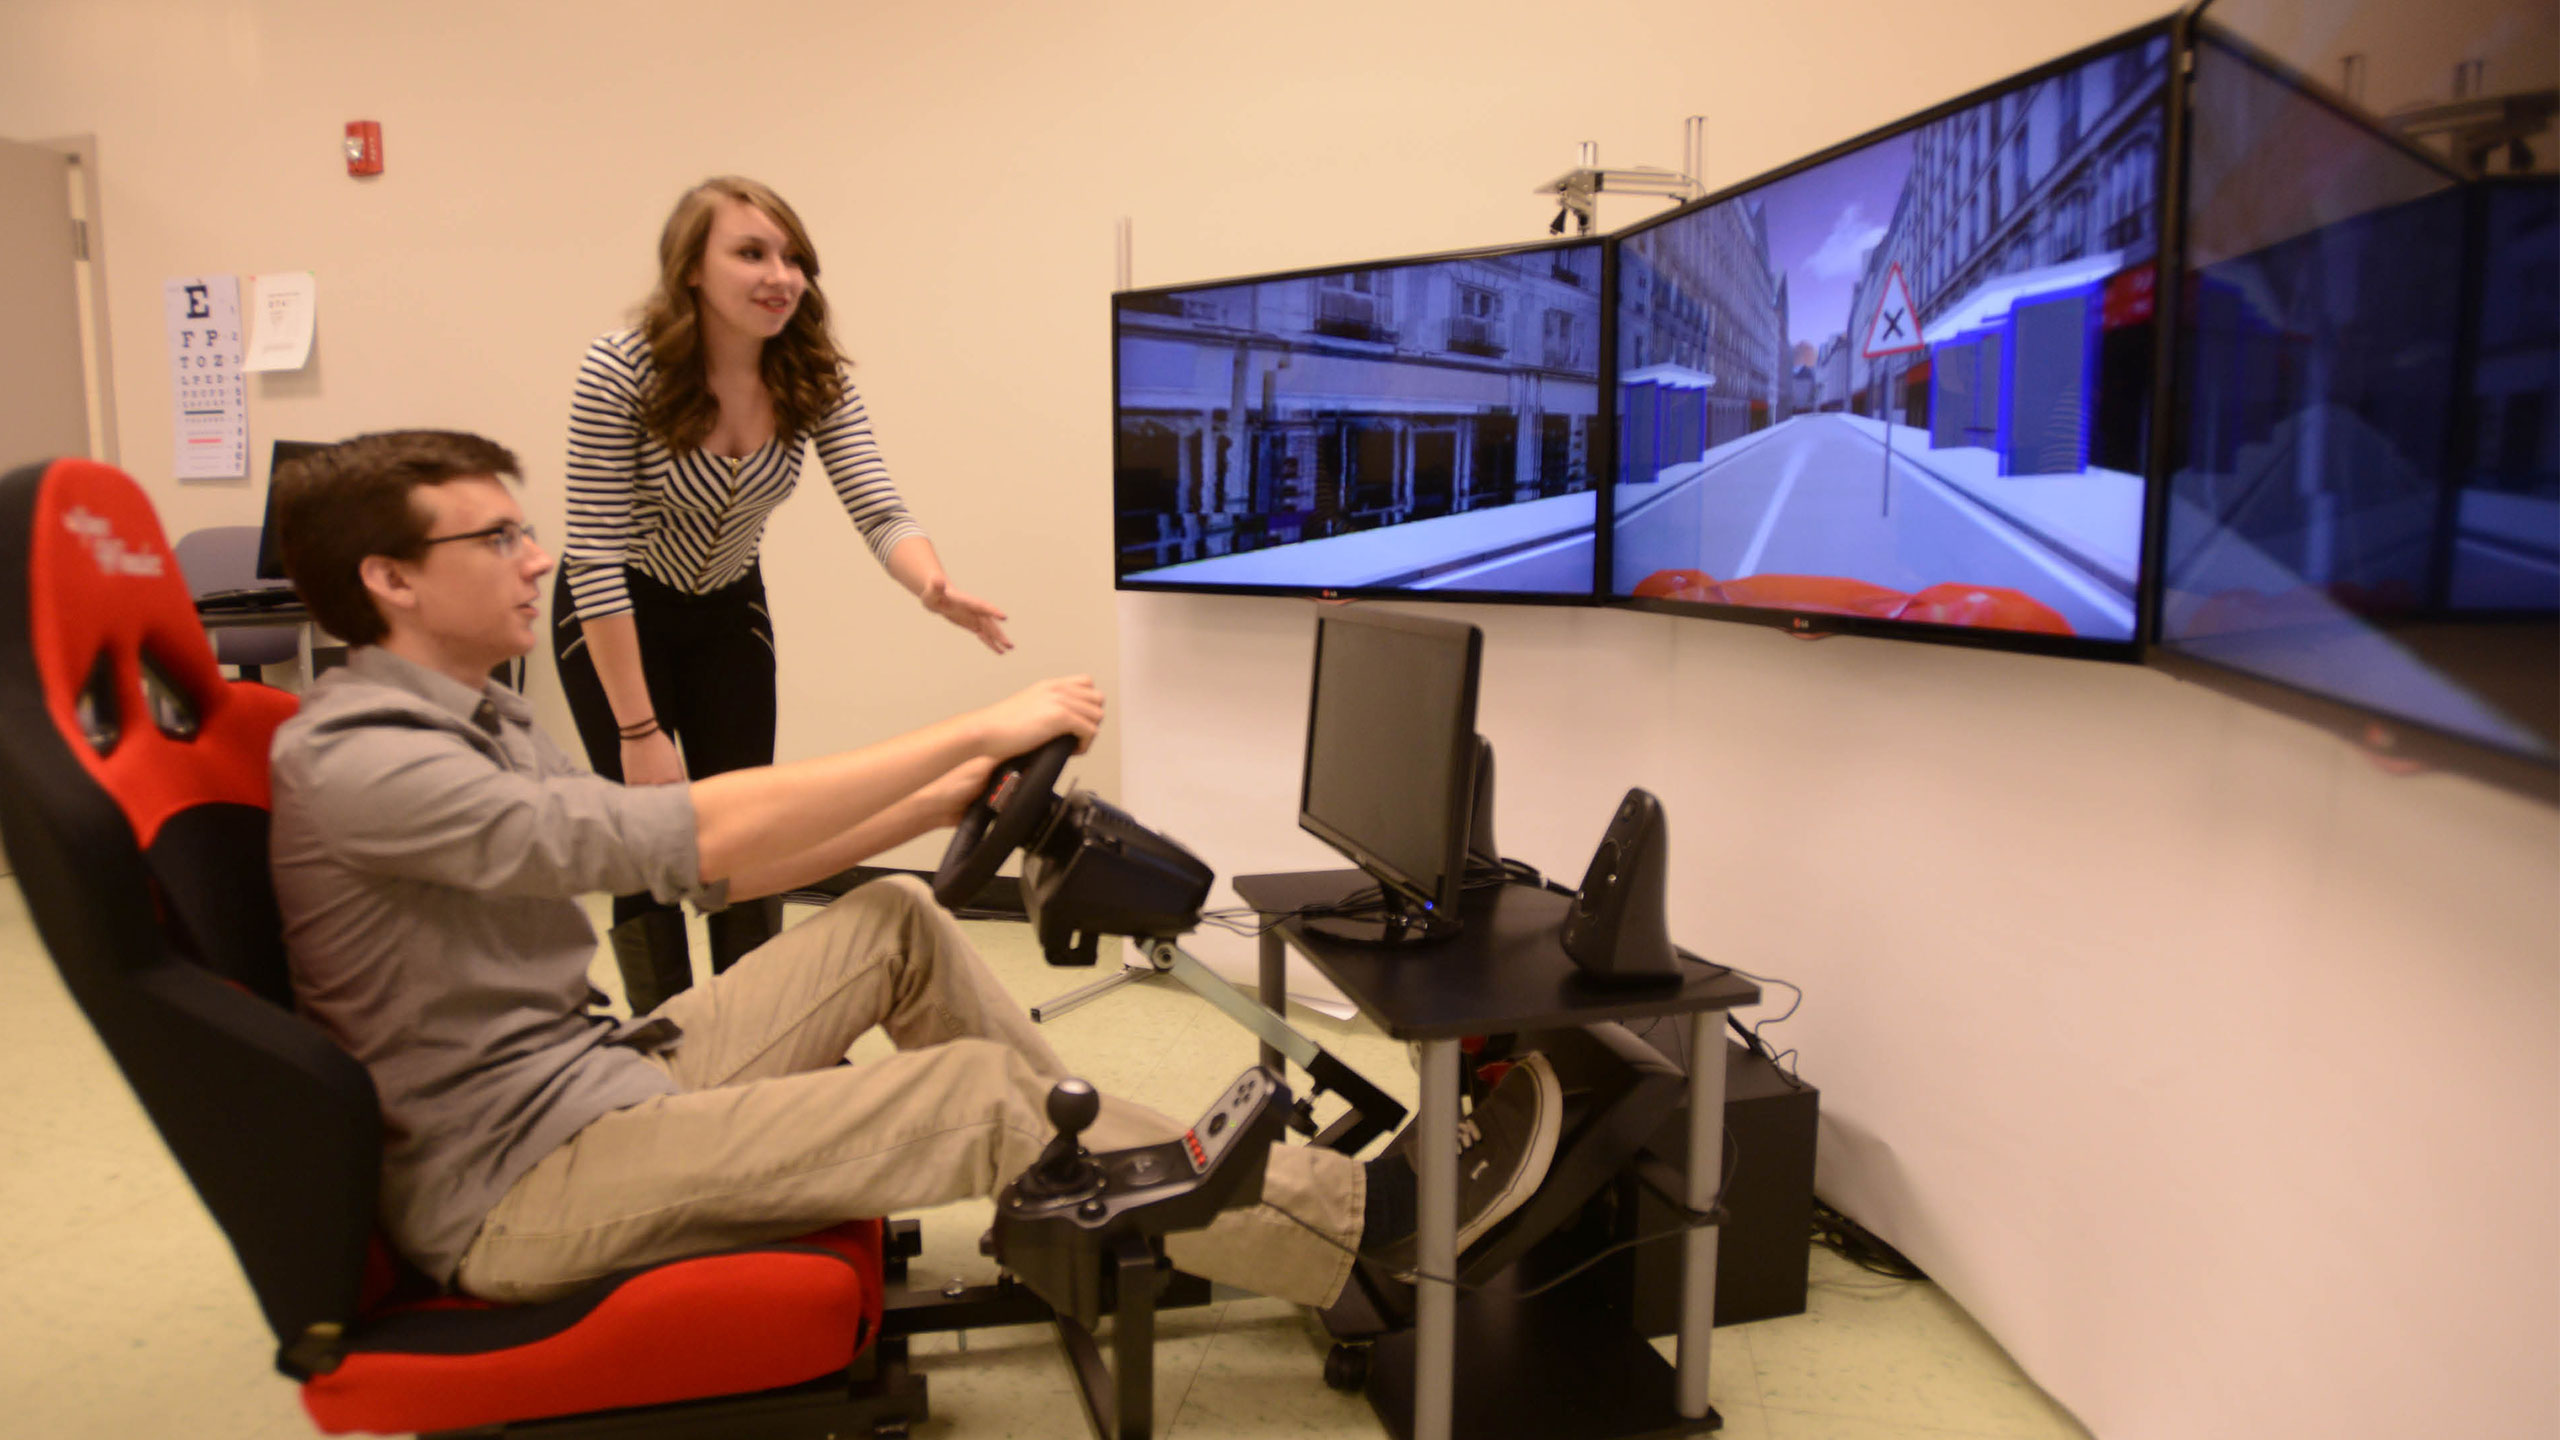 Students using a driving simulator.